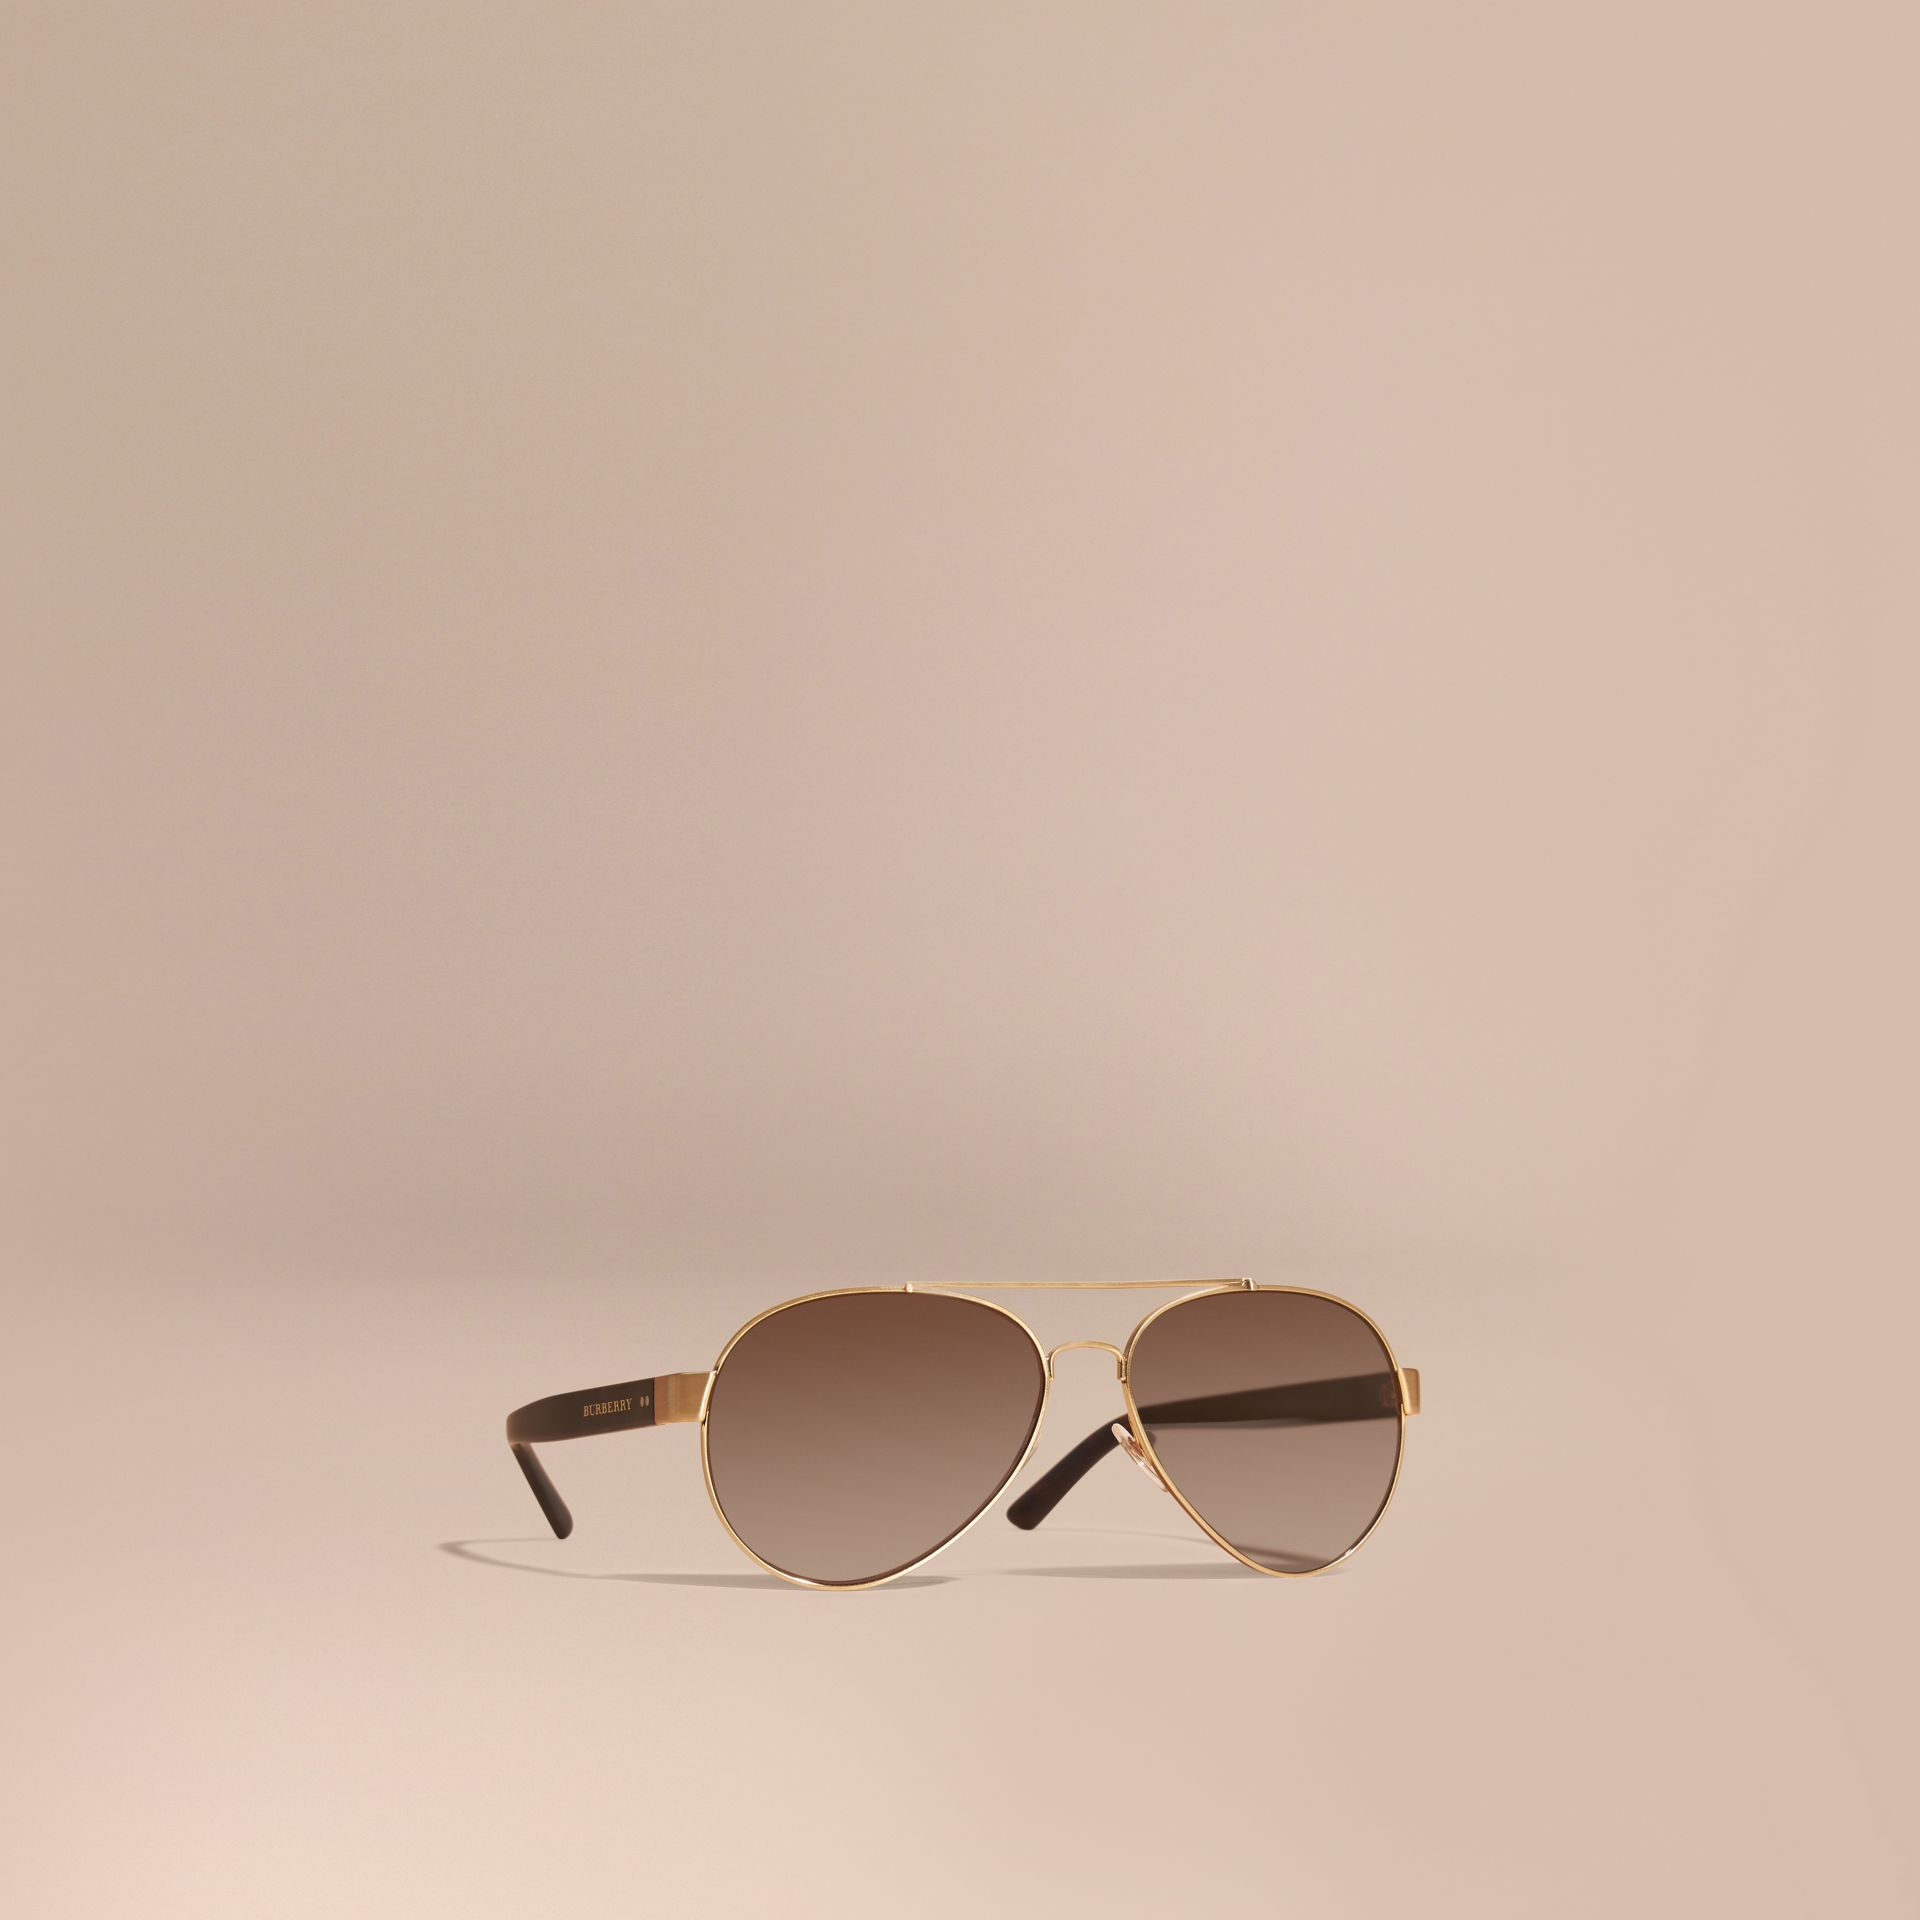 Pilot Sunglasses in Gold - Men | Burberry - gallery image 1